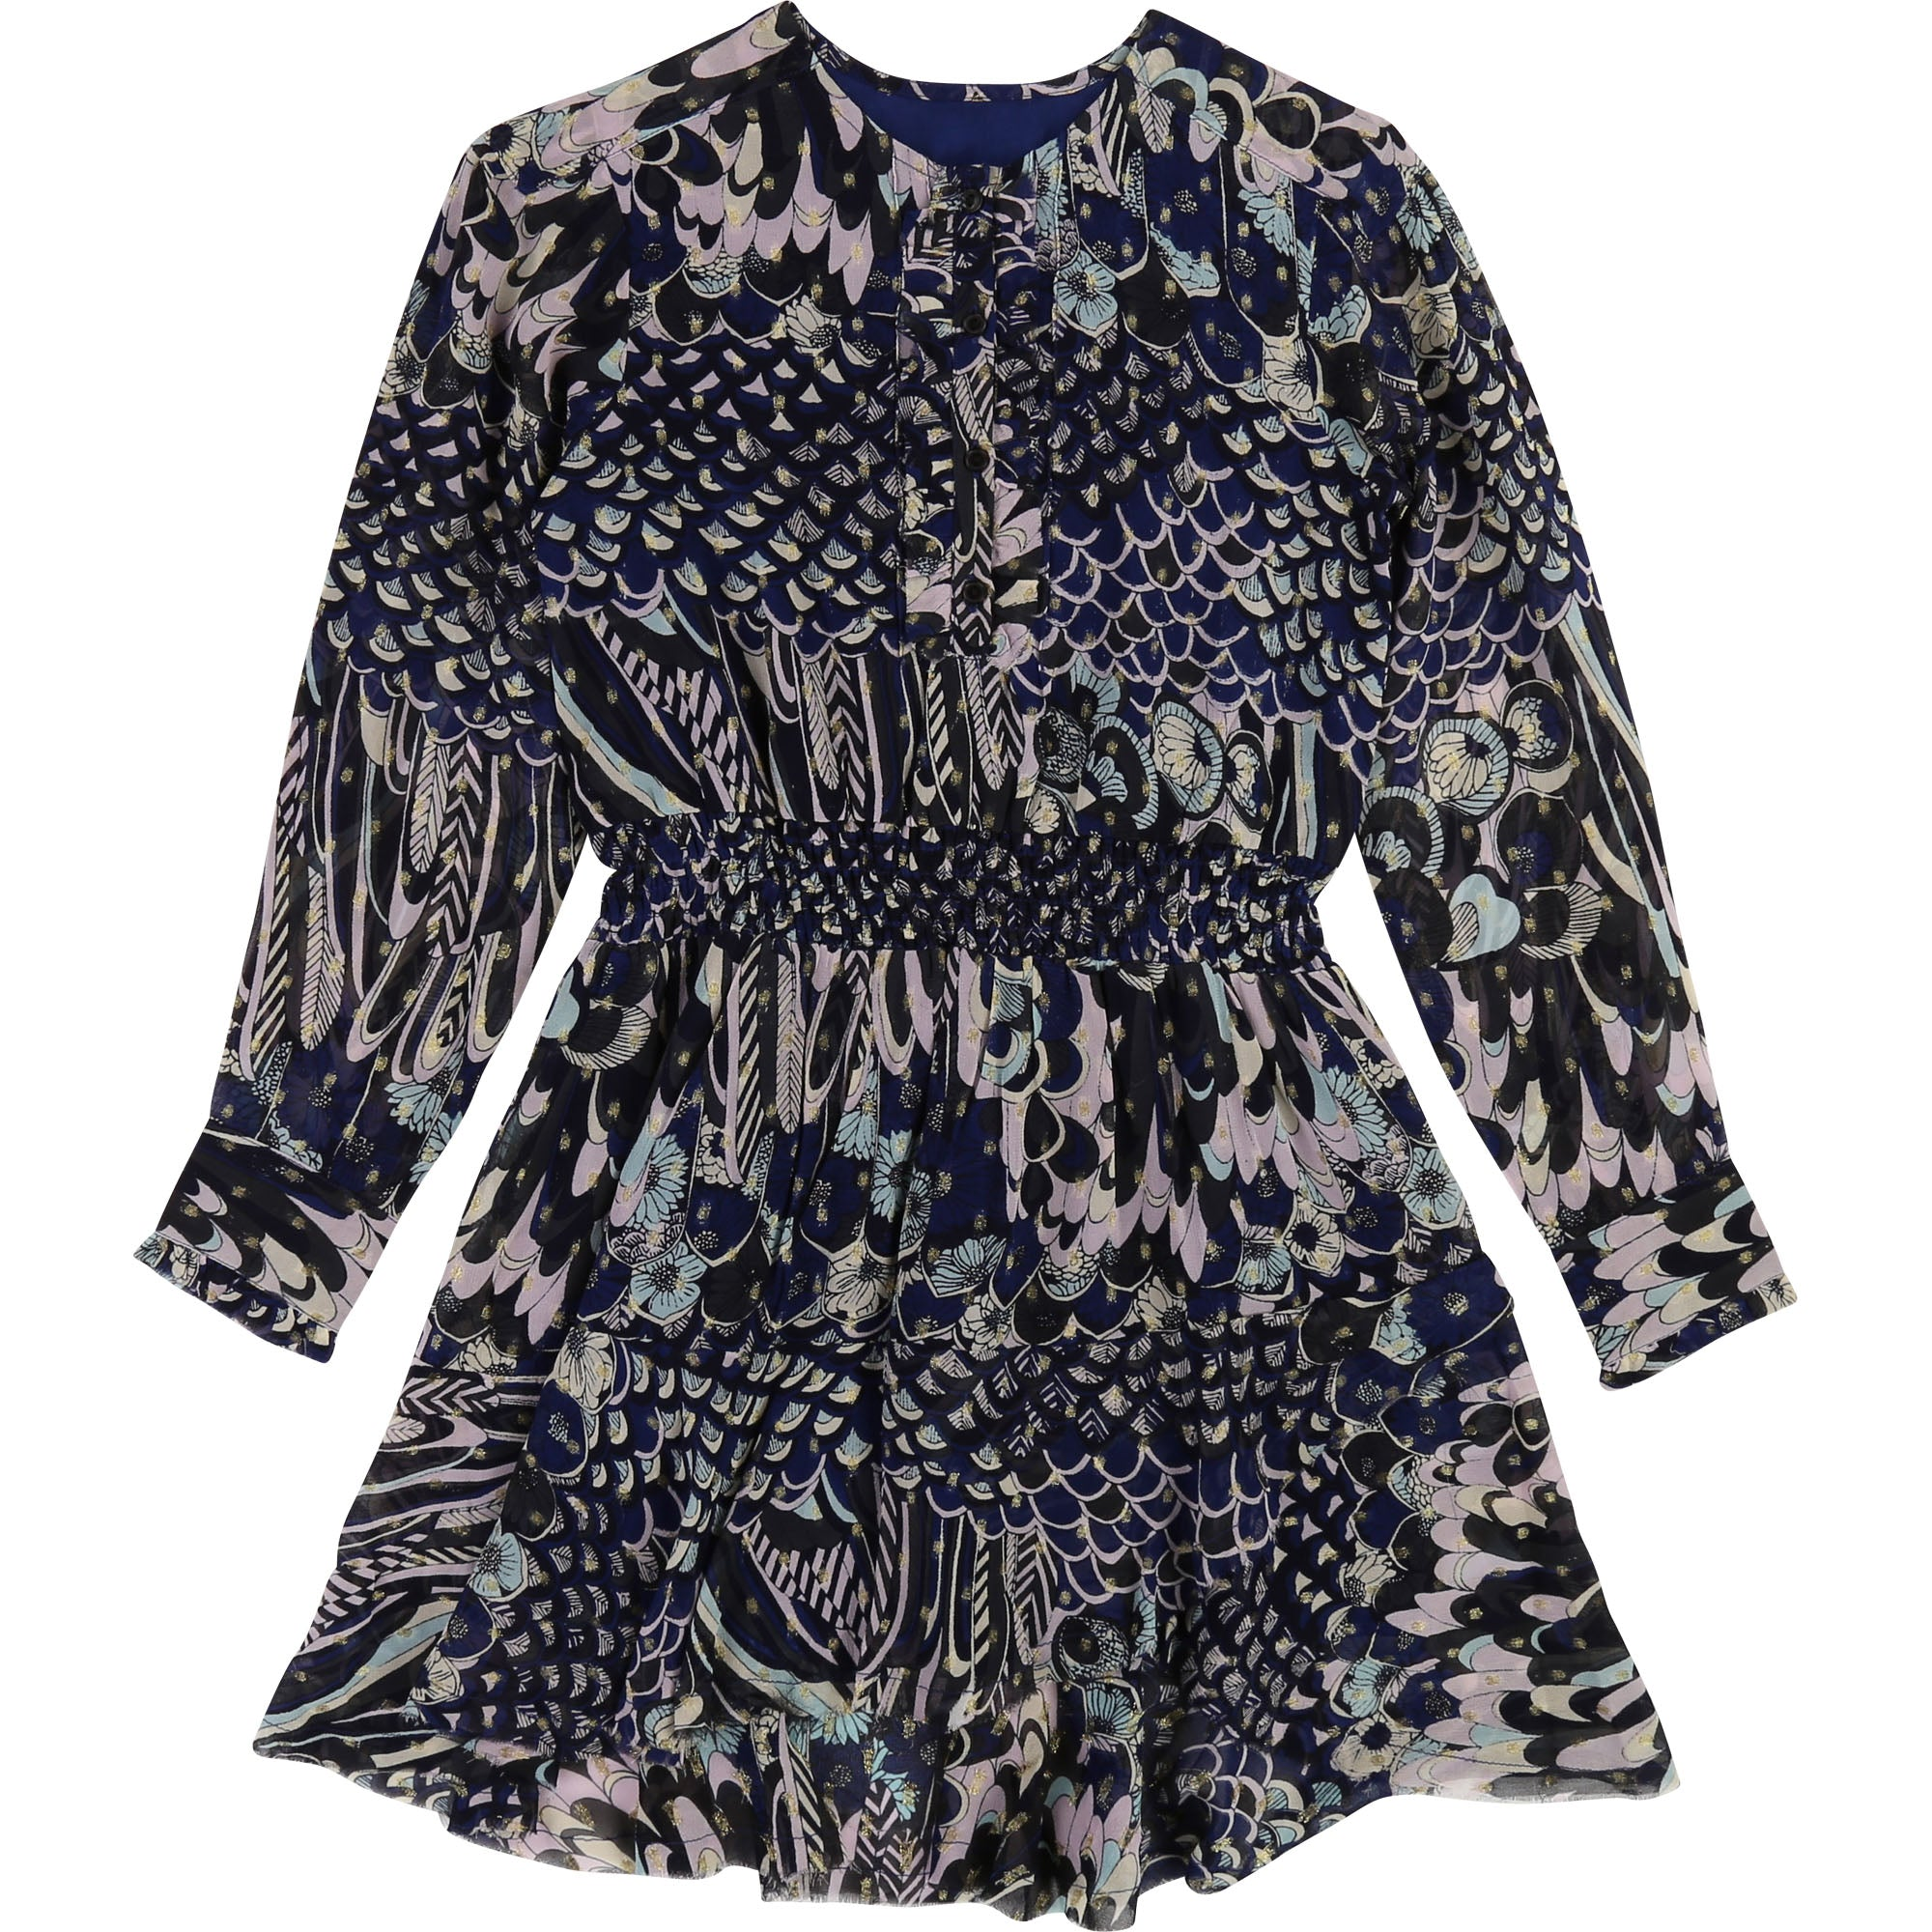 Girls Navy Blue Printed Dress